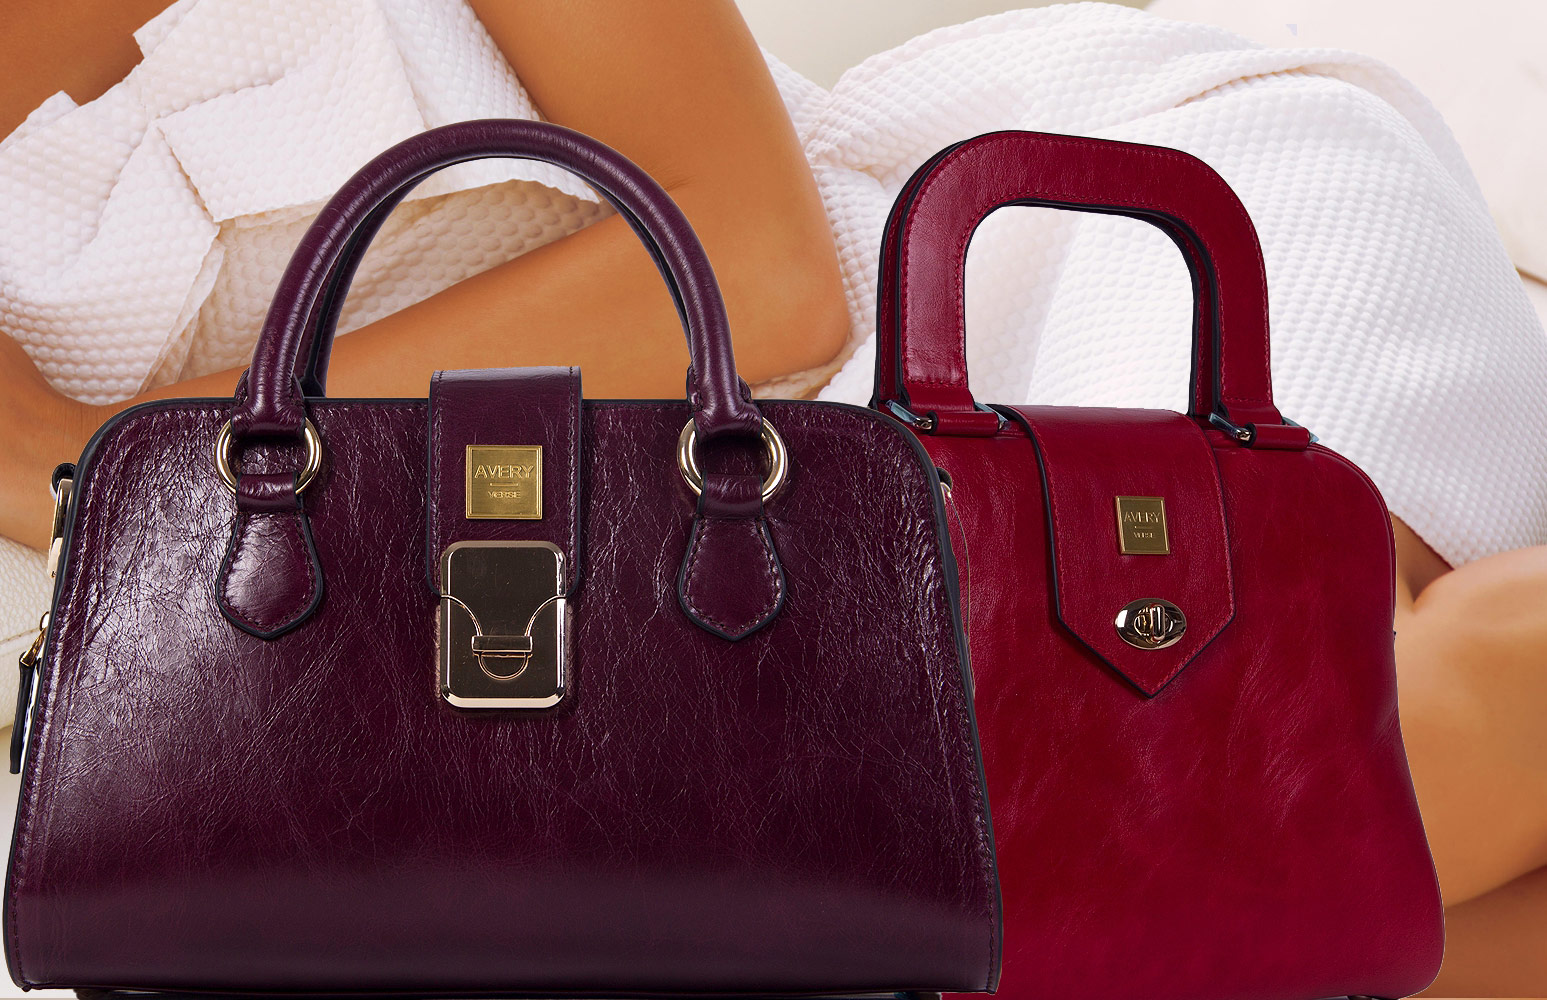 The Avery Verse Collection Of Eco-Friendly Luxury Handbags